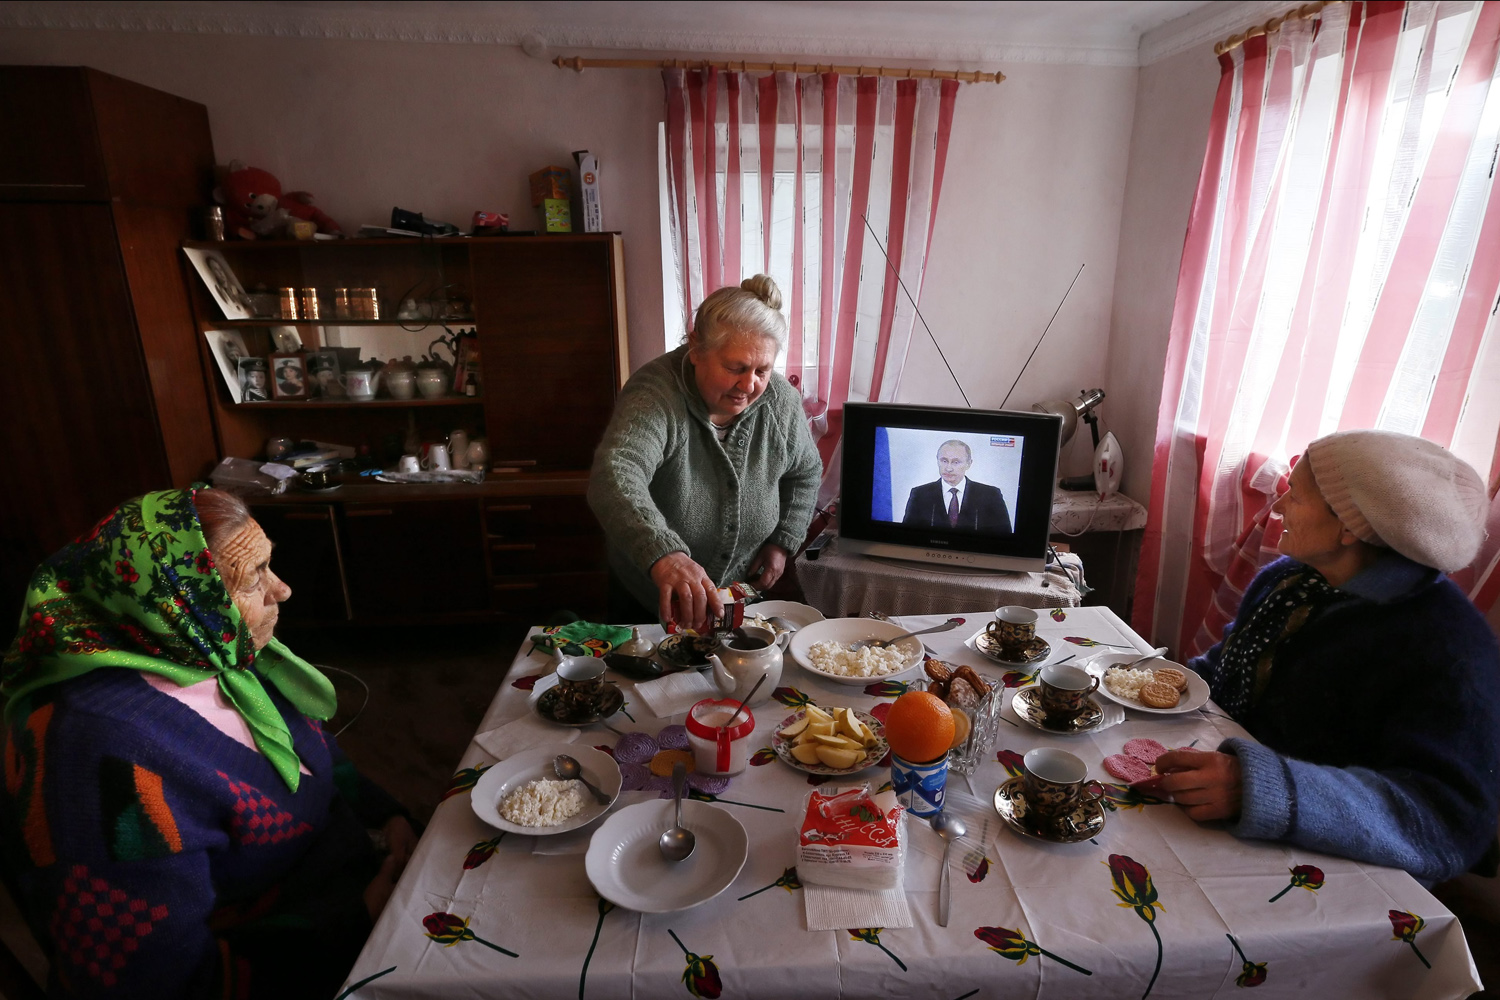 Mar. 18,  2014. Women have their lunch as they watch Russian President Vladimir Putin on the television addressing the Russian Federal Assembly on the Crimean referendum to reunify with Russia outside Simferopol, Crimea, Ukraine.